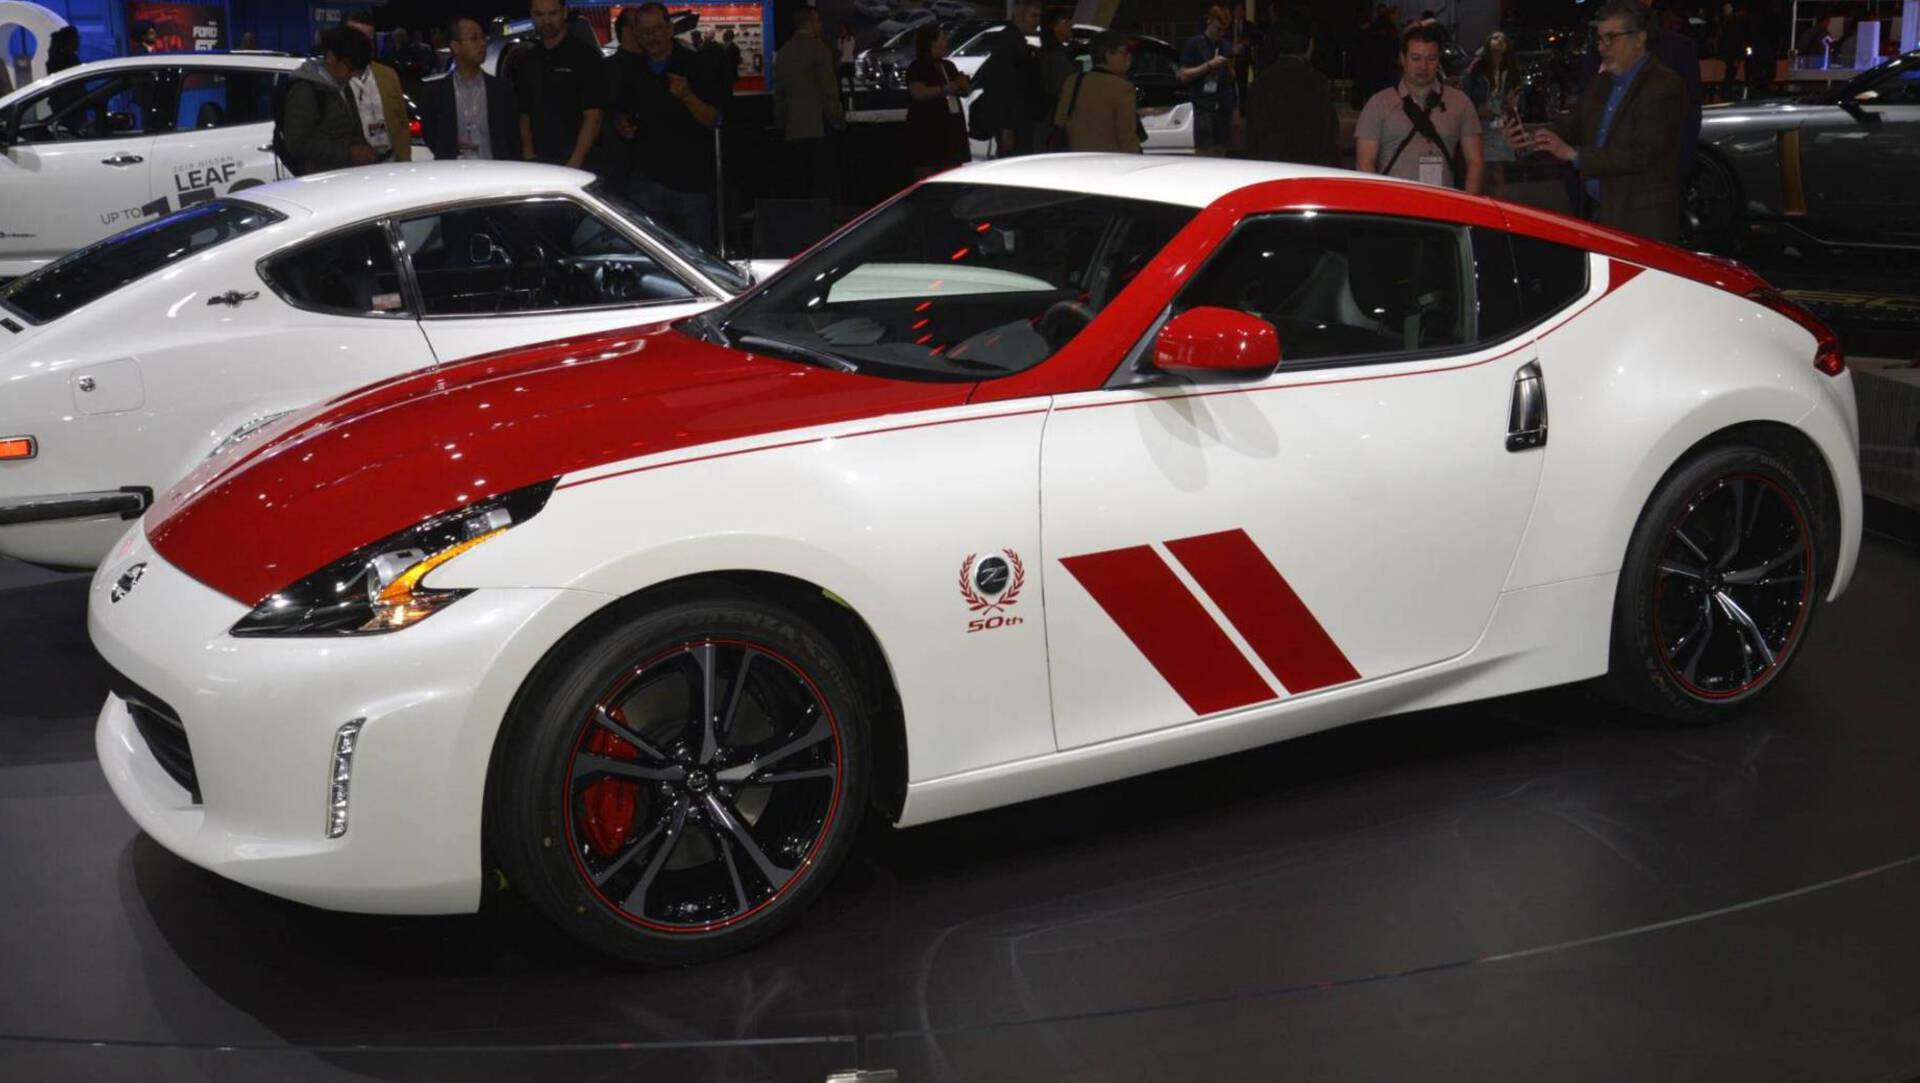 Retro Liveried 2020 Nissan 370z 50th Anniversary Edition